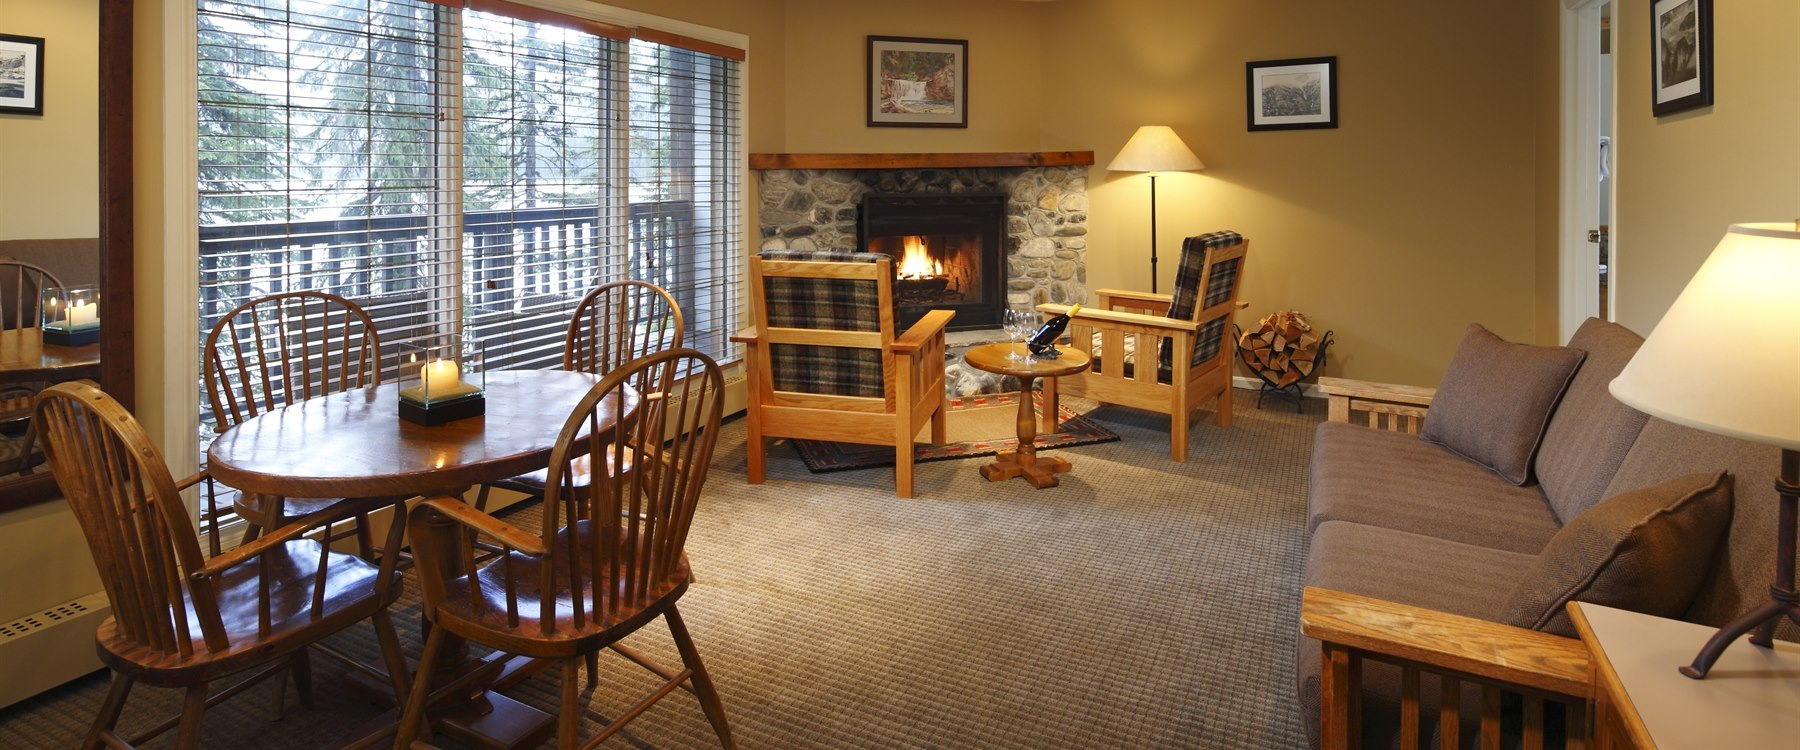 Living Room at Emerald Lake Lodge